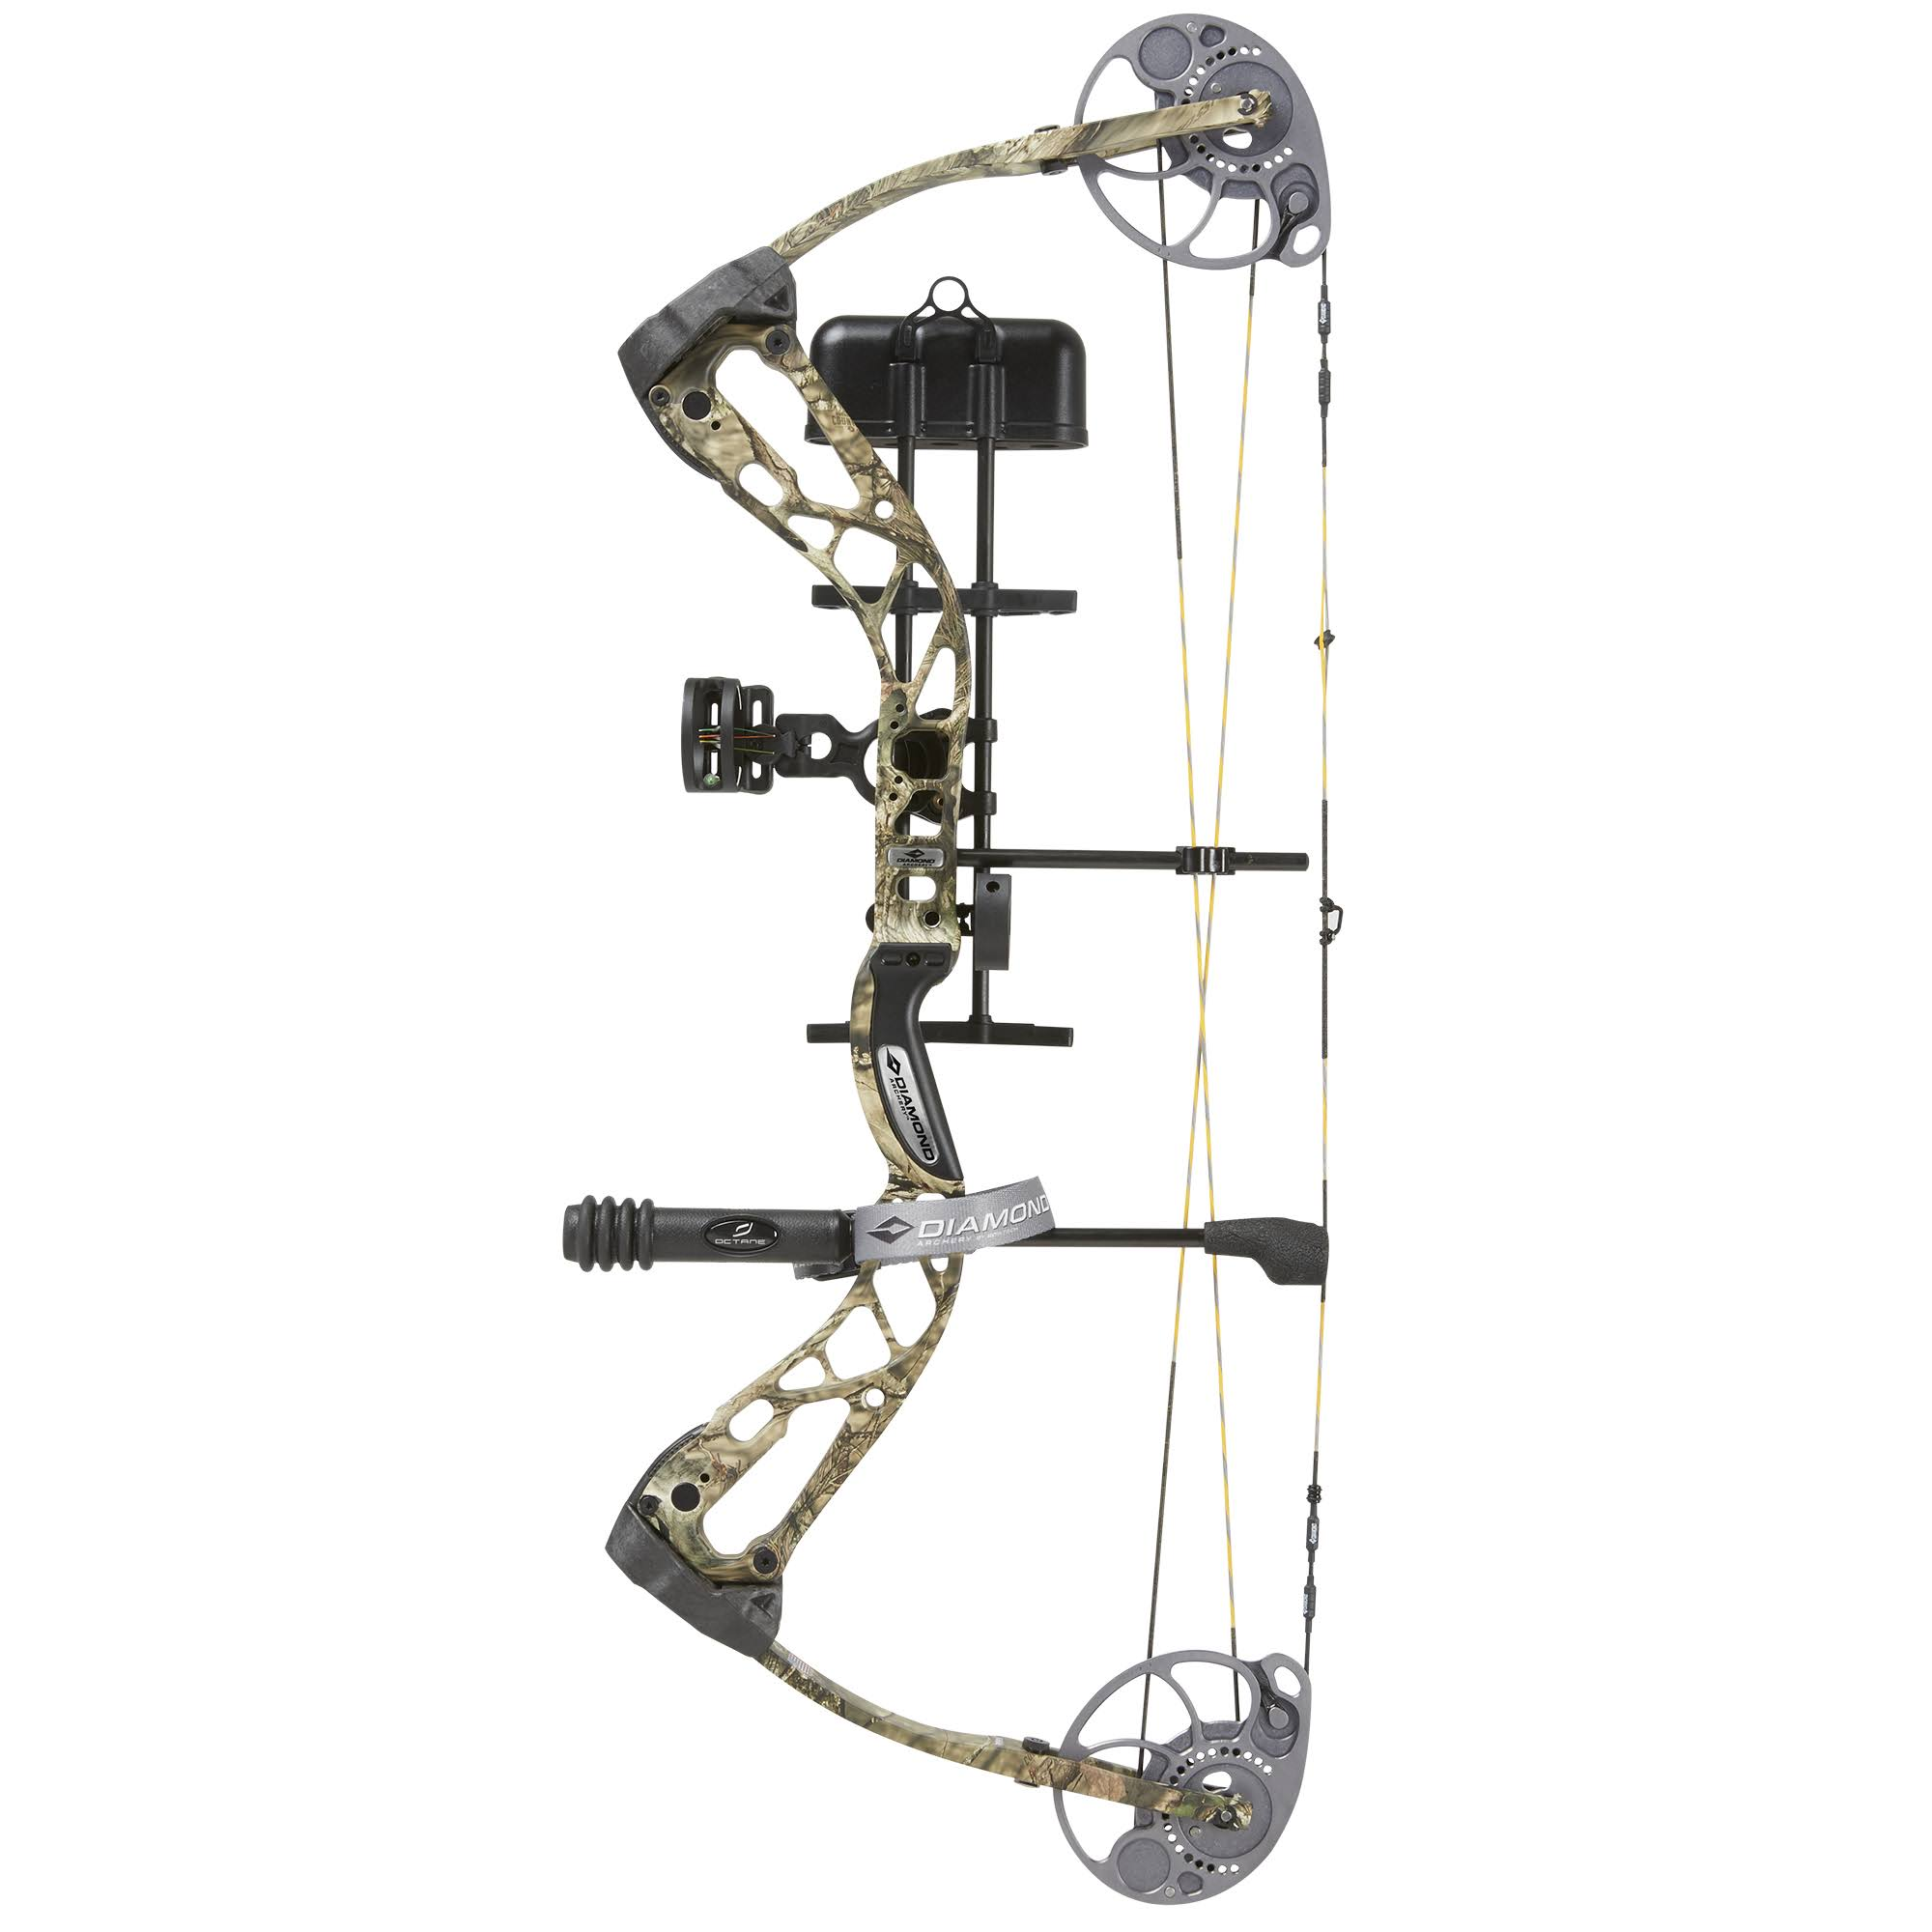 Diamond Archery Edge SB-1 Compound Bow Package - 7 to 70lbs, Mossy